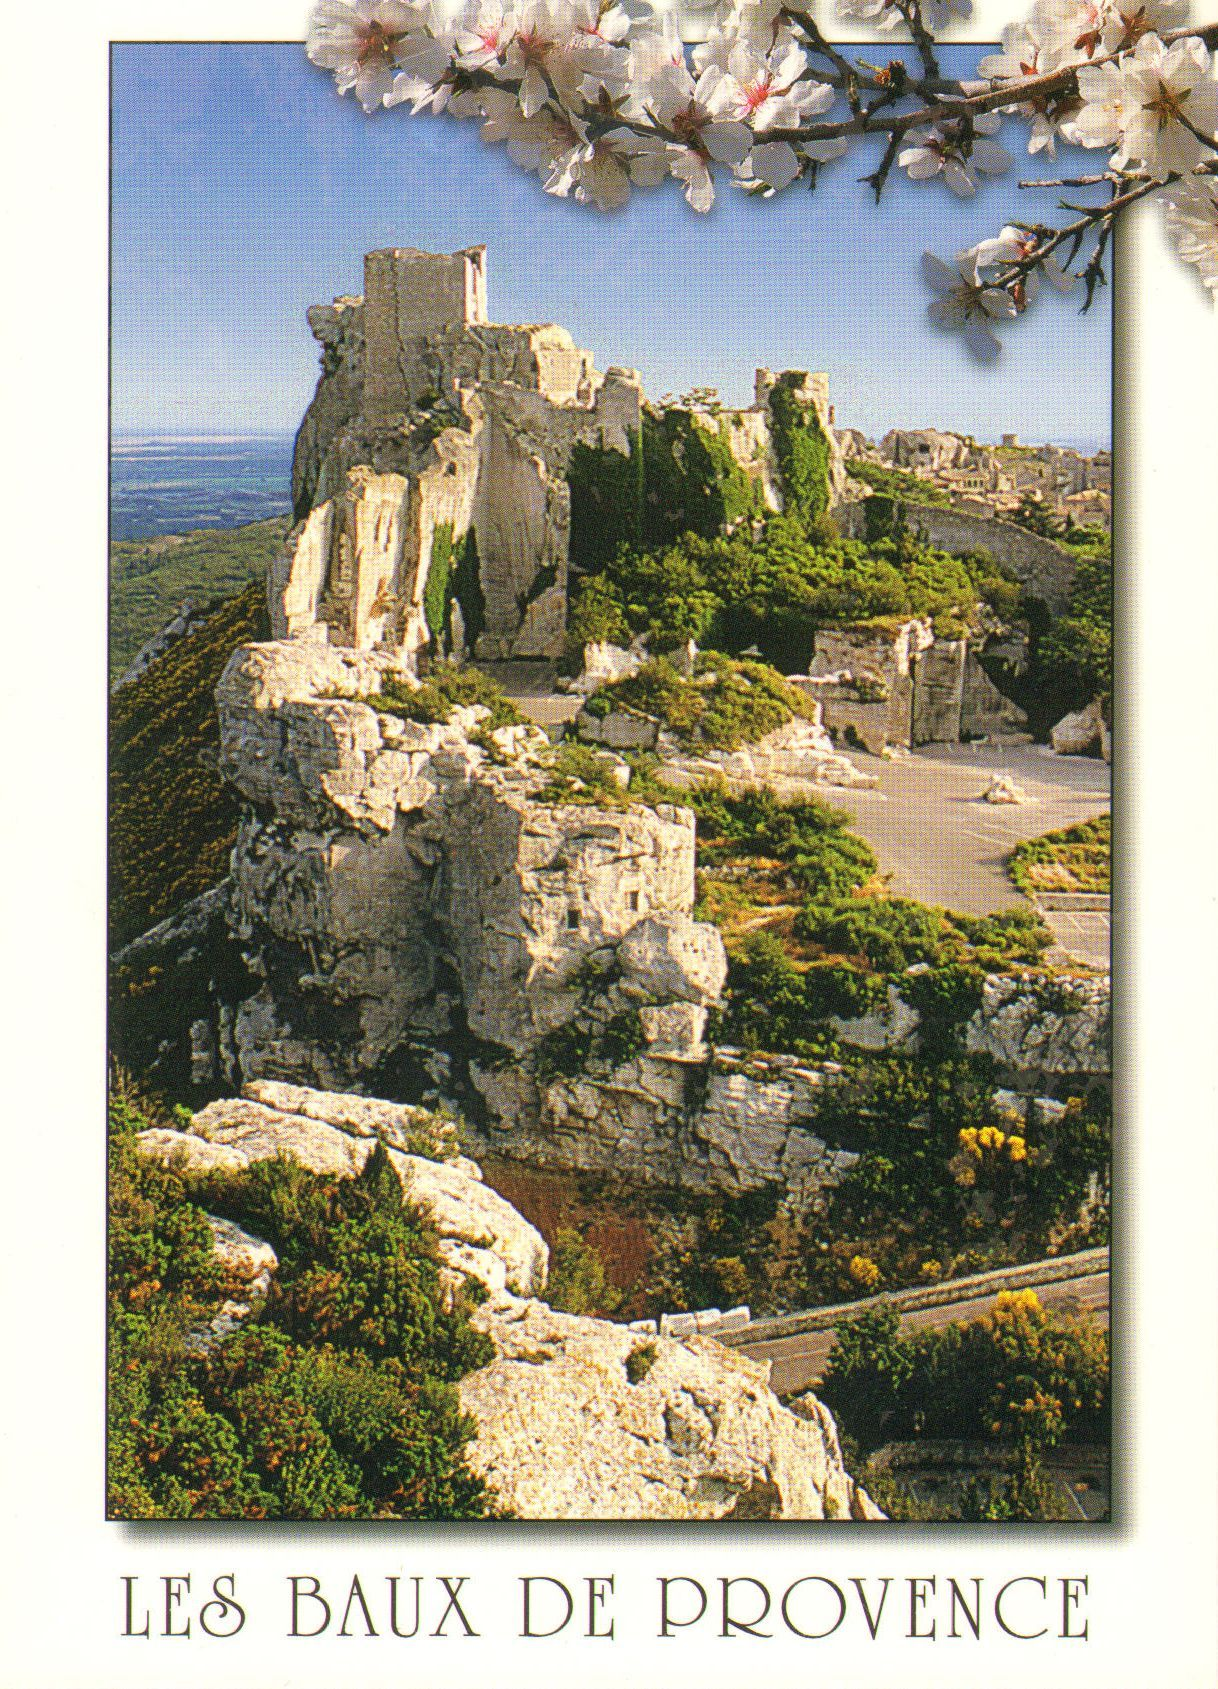 Les Baux De Provence Is A Commune In The Bouches Du Rhône Department Of The Province Of Provence In Southern France It Has A Mountains Natural Landmarks World